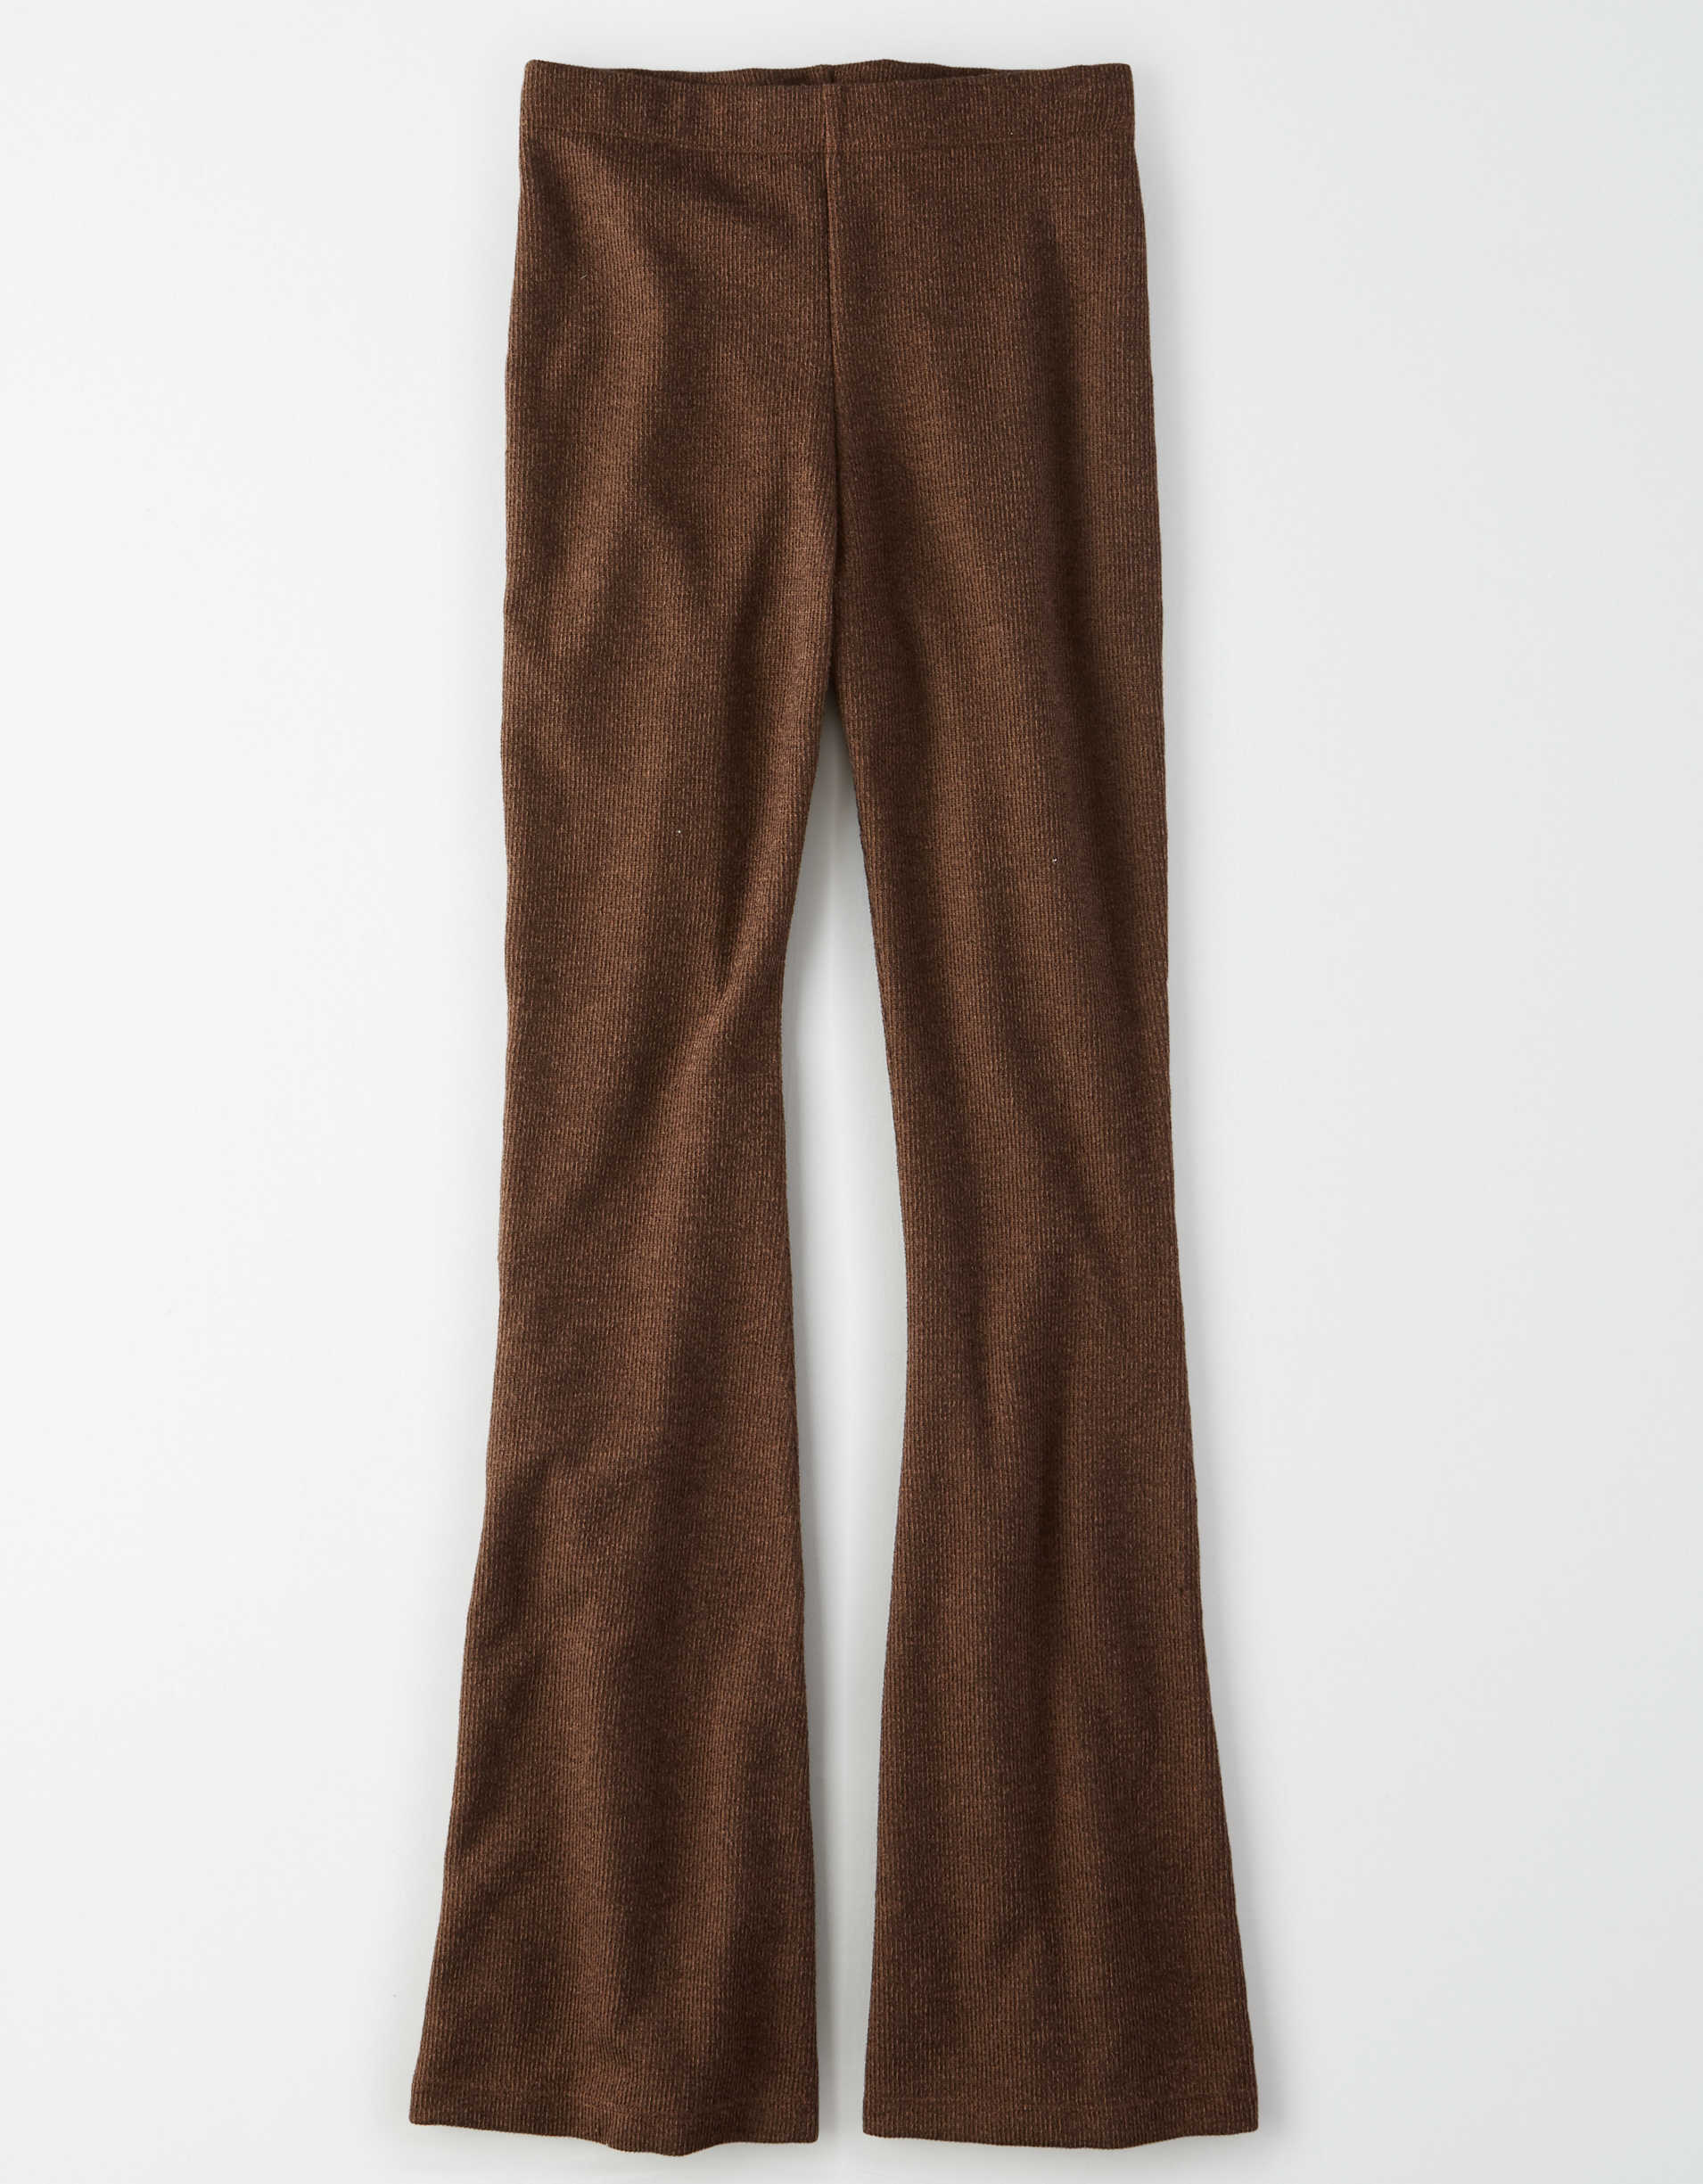 AE Studio Textured Flared Pant